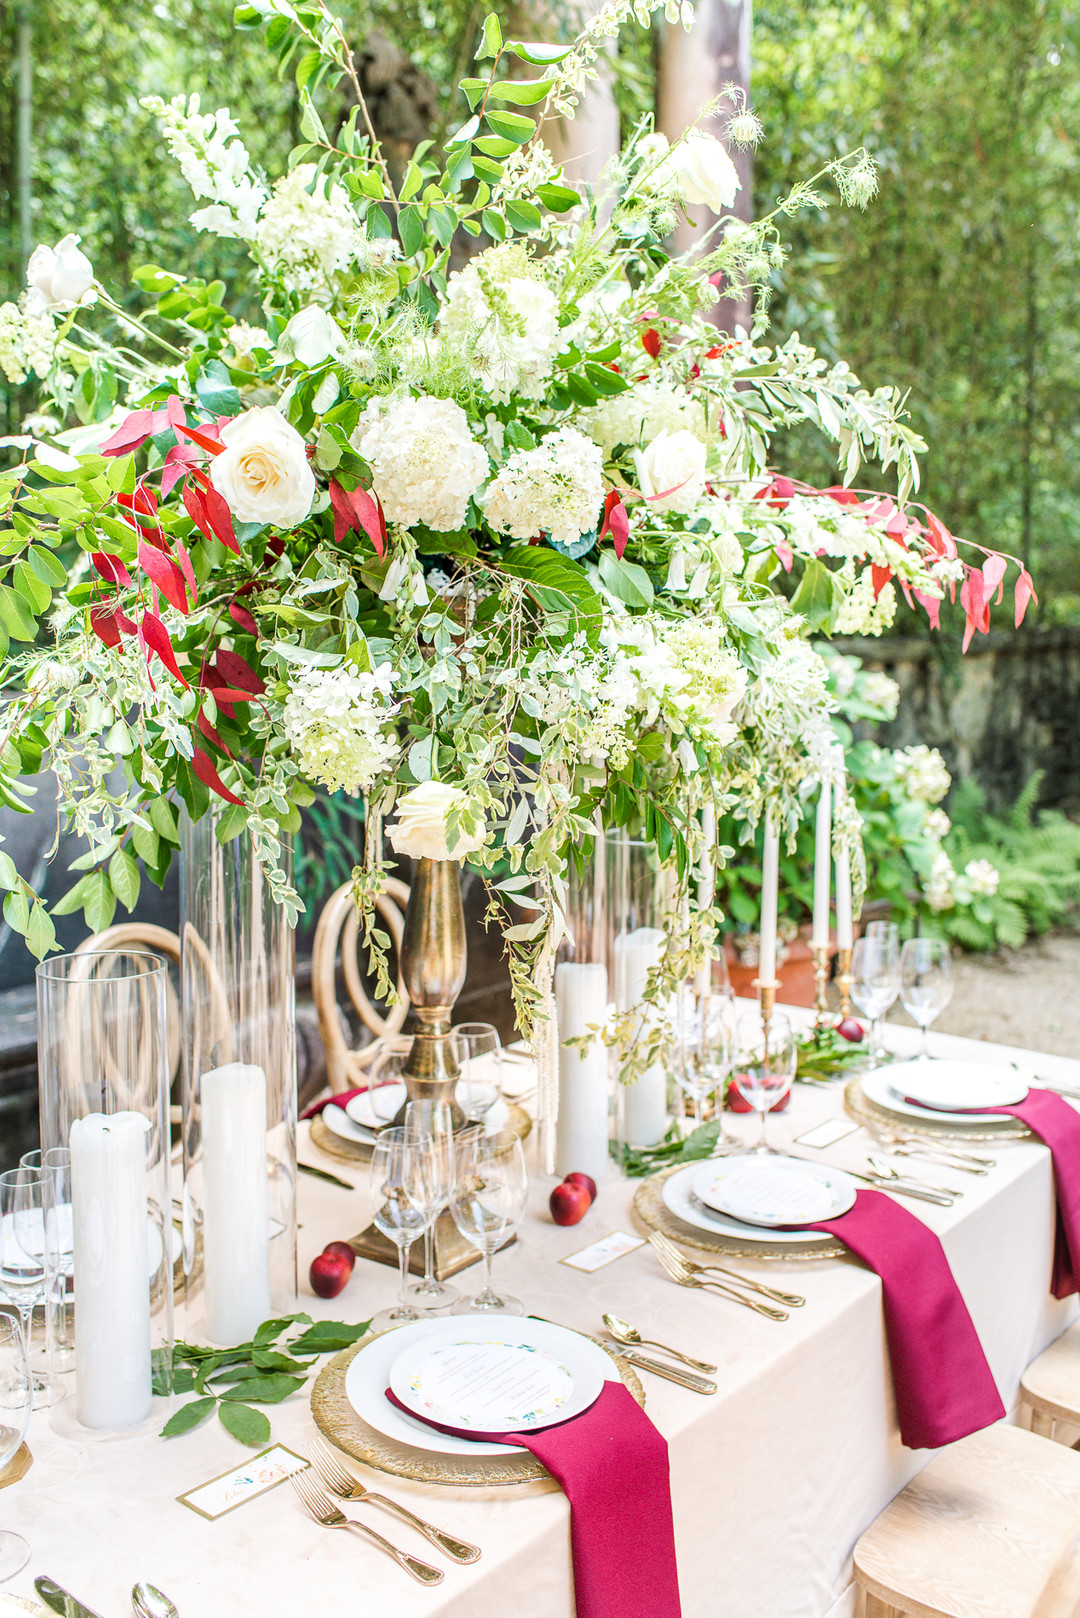 large, red, green, and white floral centerpieces on a table with red napkins and a beige tablecloth